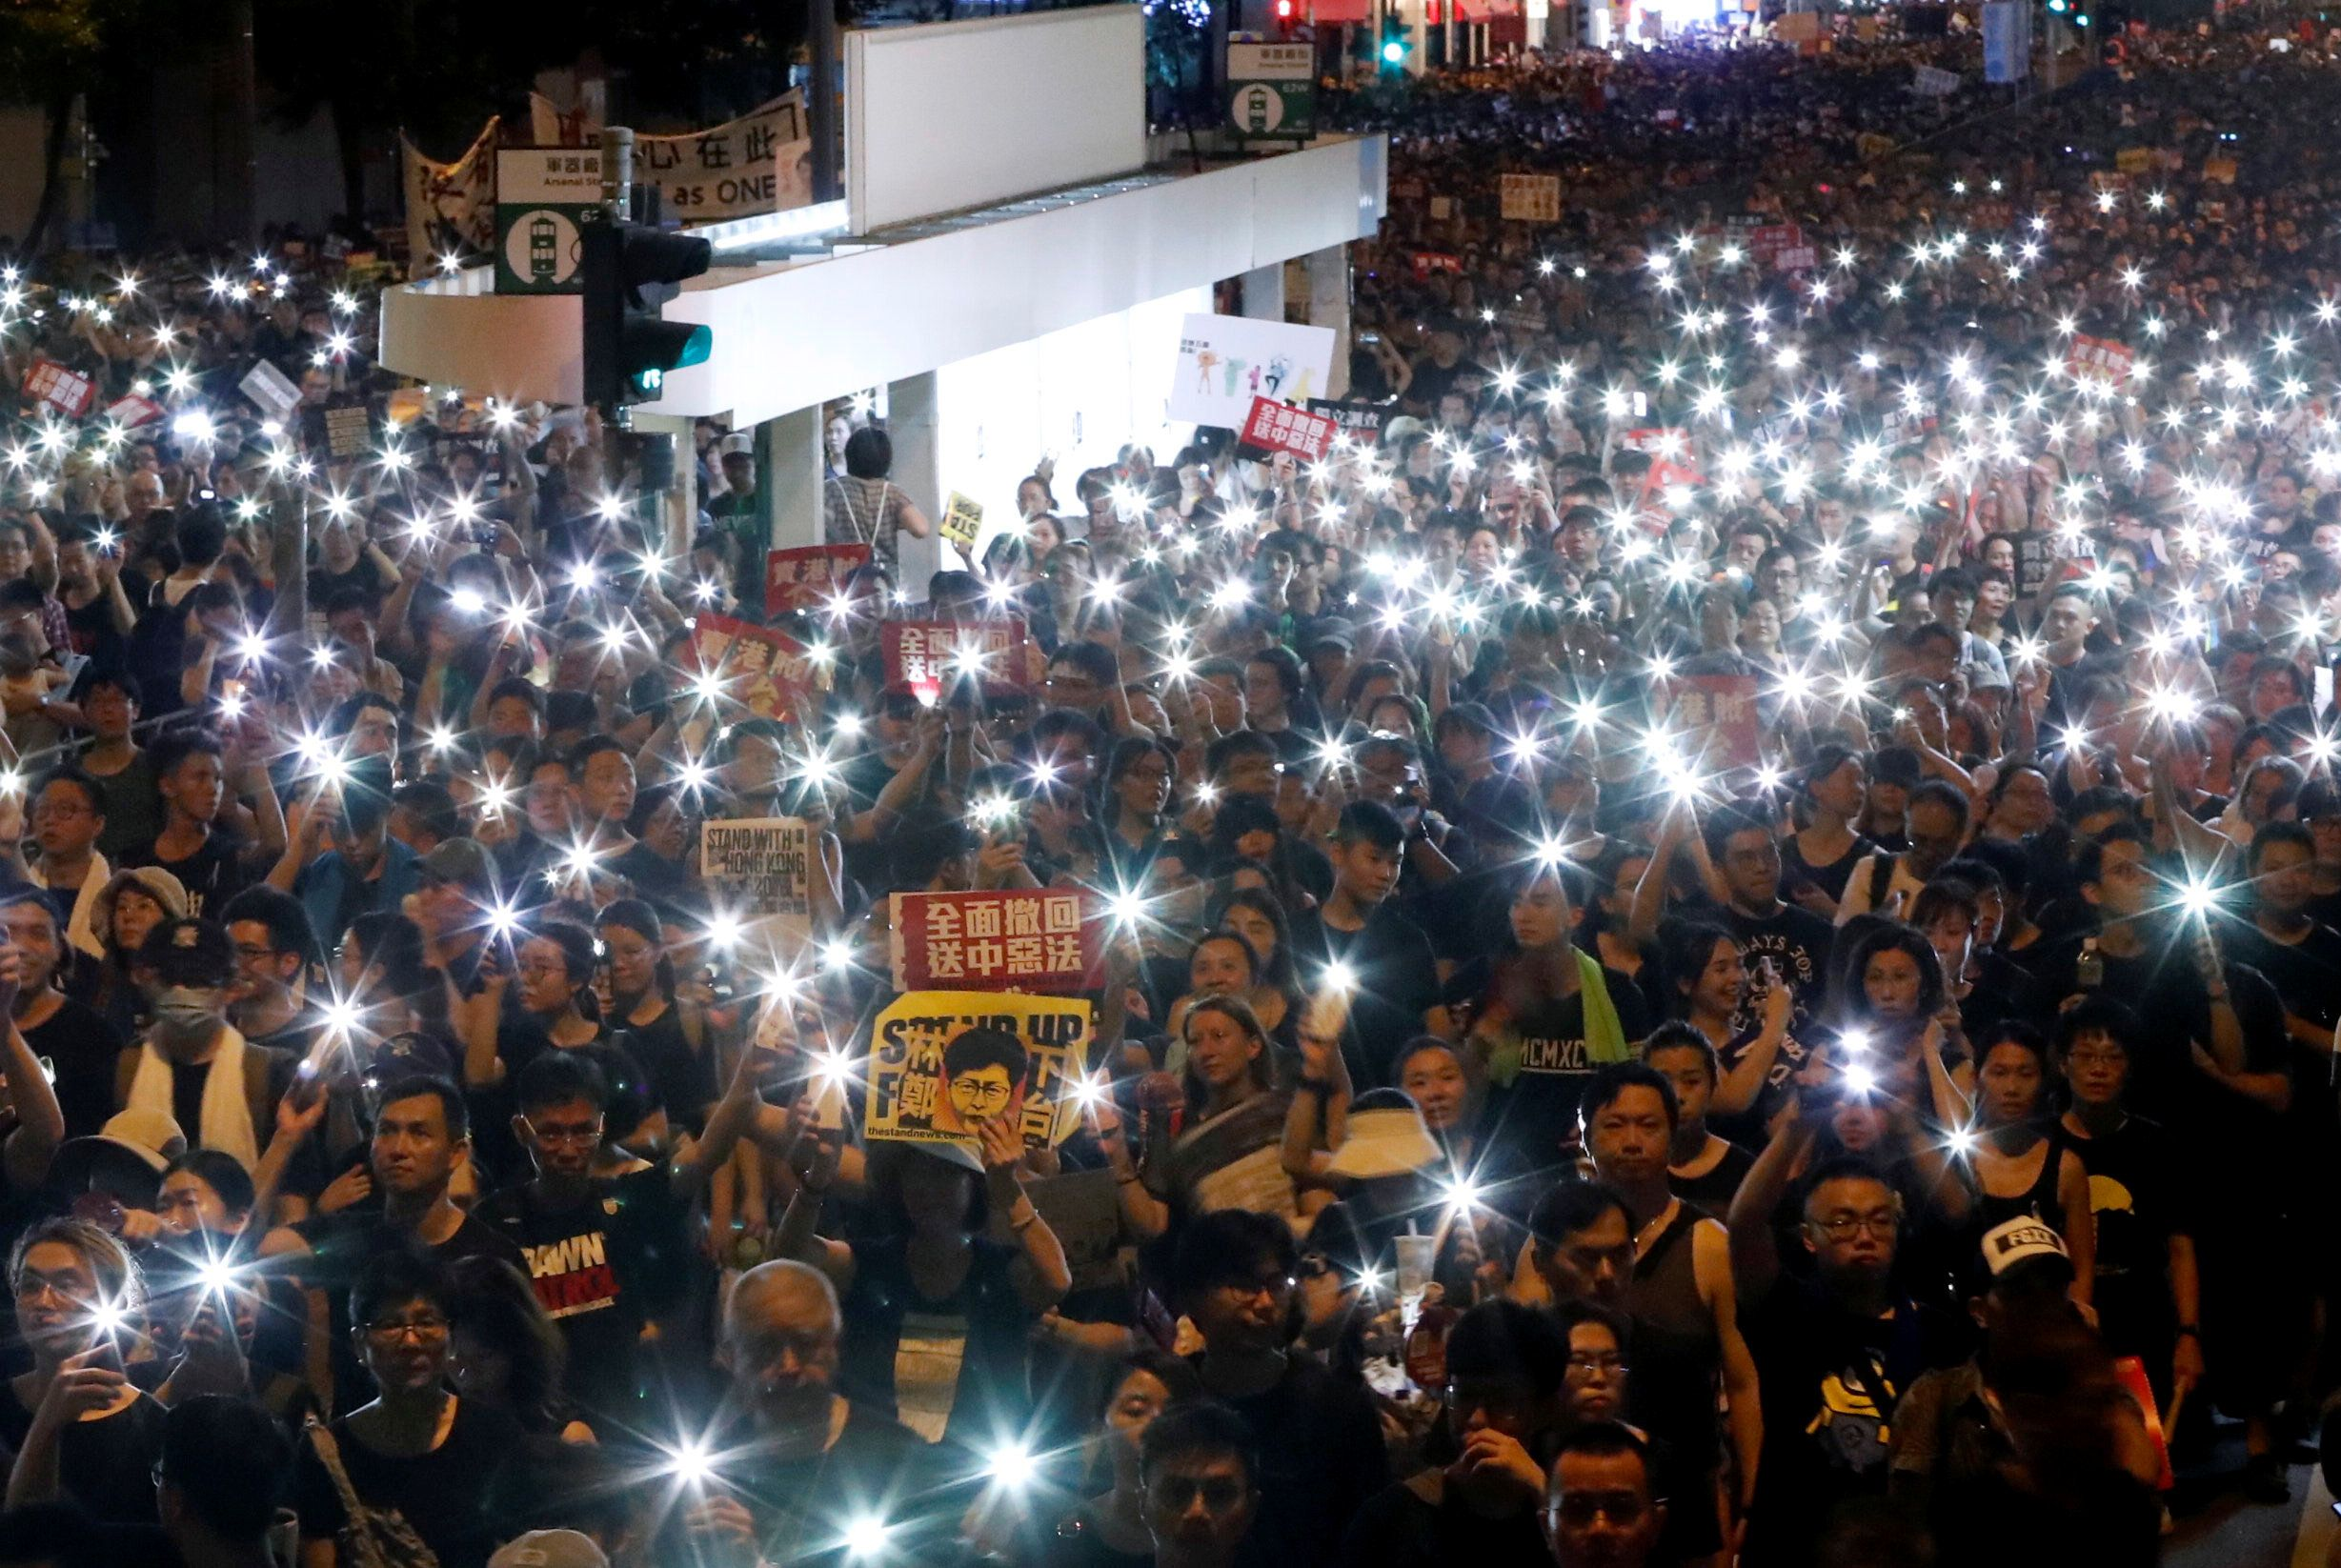 What We're Watching: Hong Kong, Rome vs Brussels, Tunisia's President